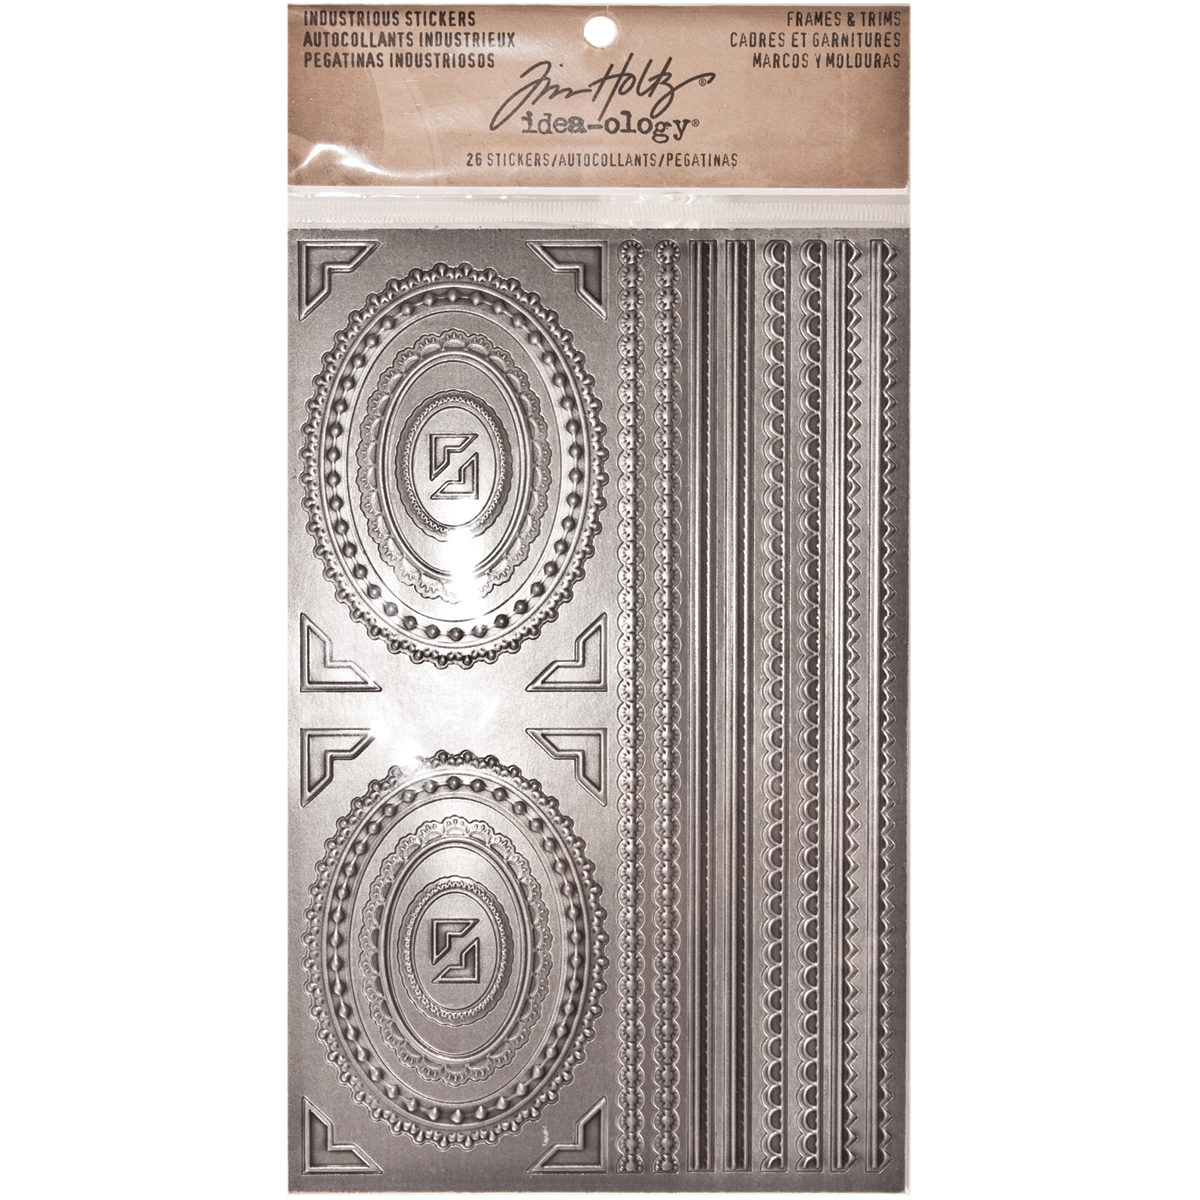 "Idea-Ology Industrious Stickers 5""X8""-Metallic Frames & Trims"